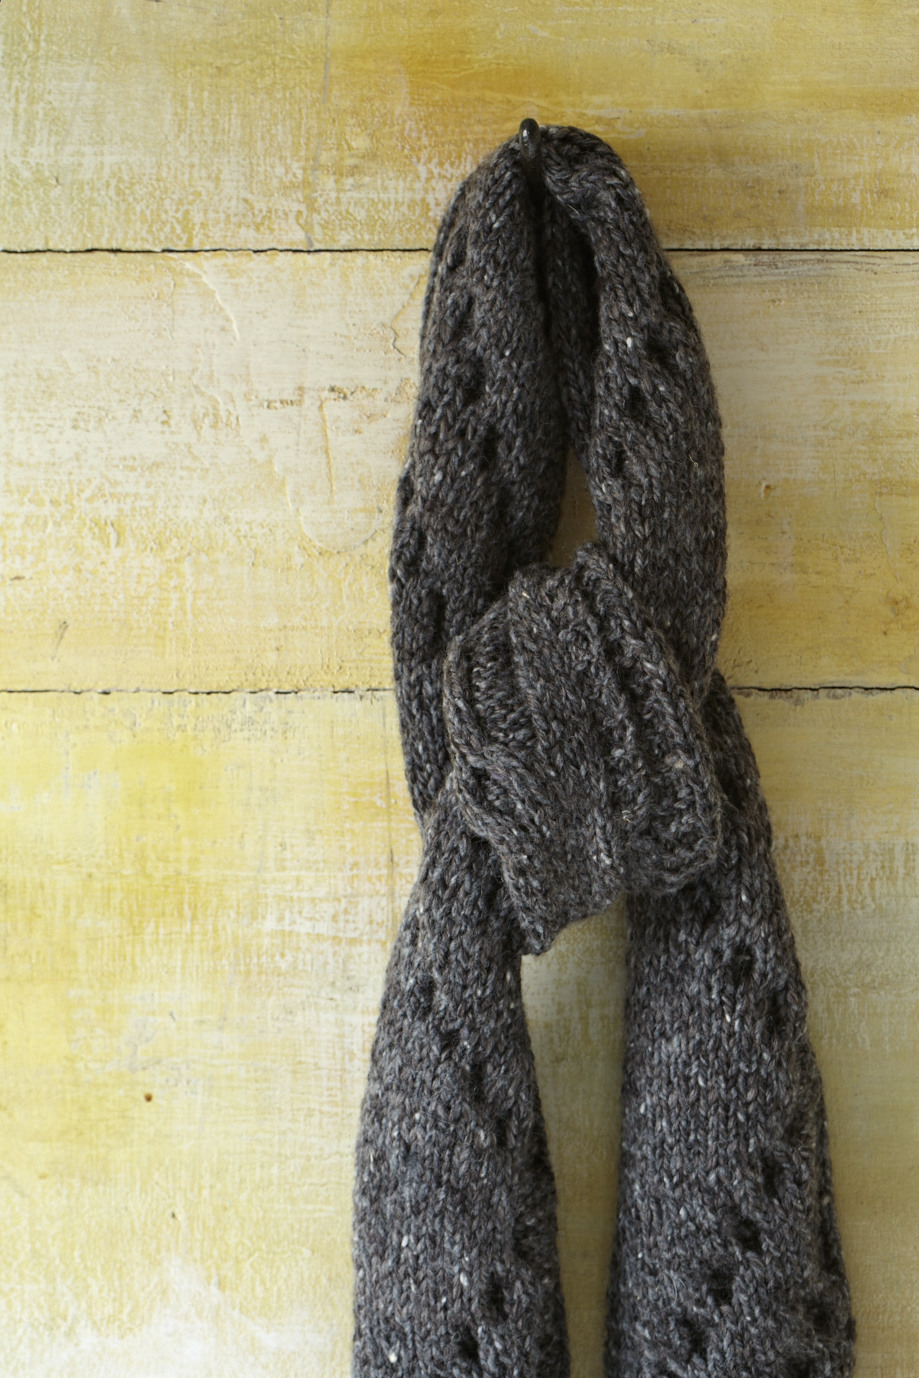 140a_TwistCableScarf_002.jpg